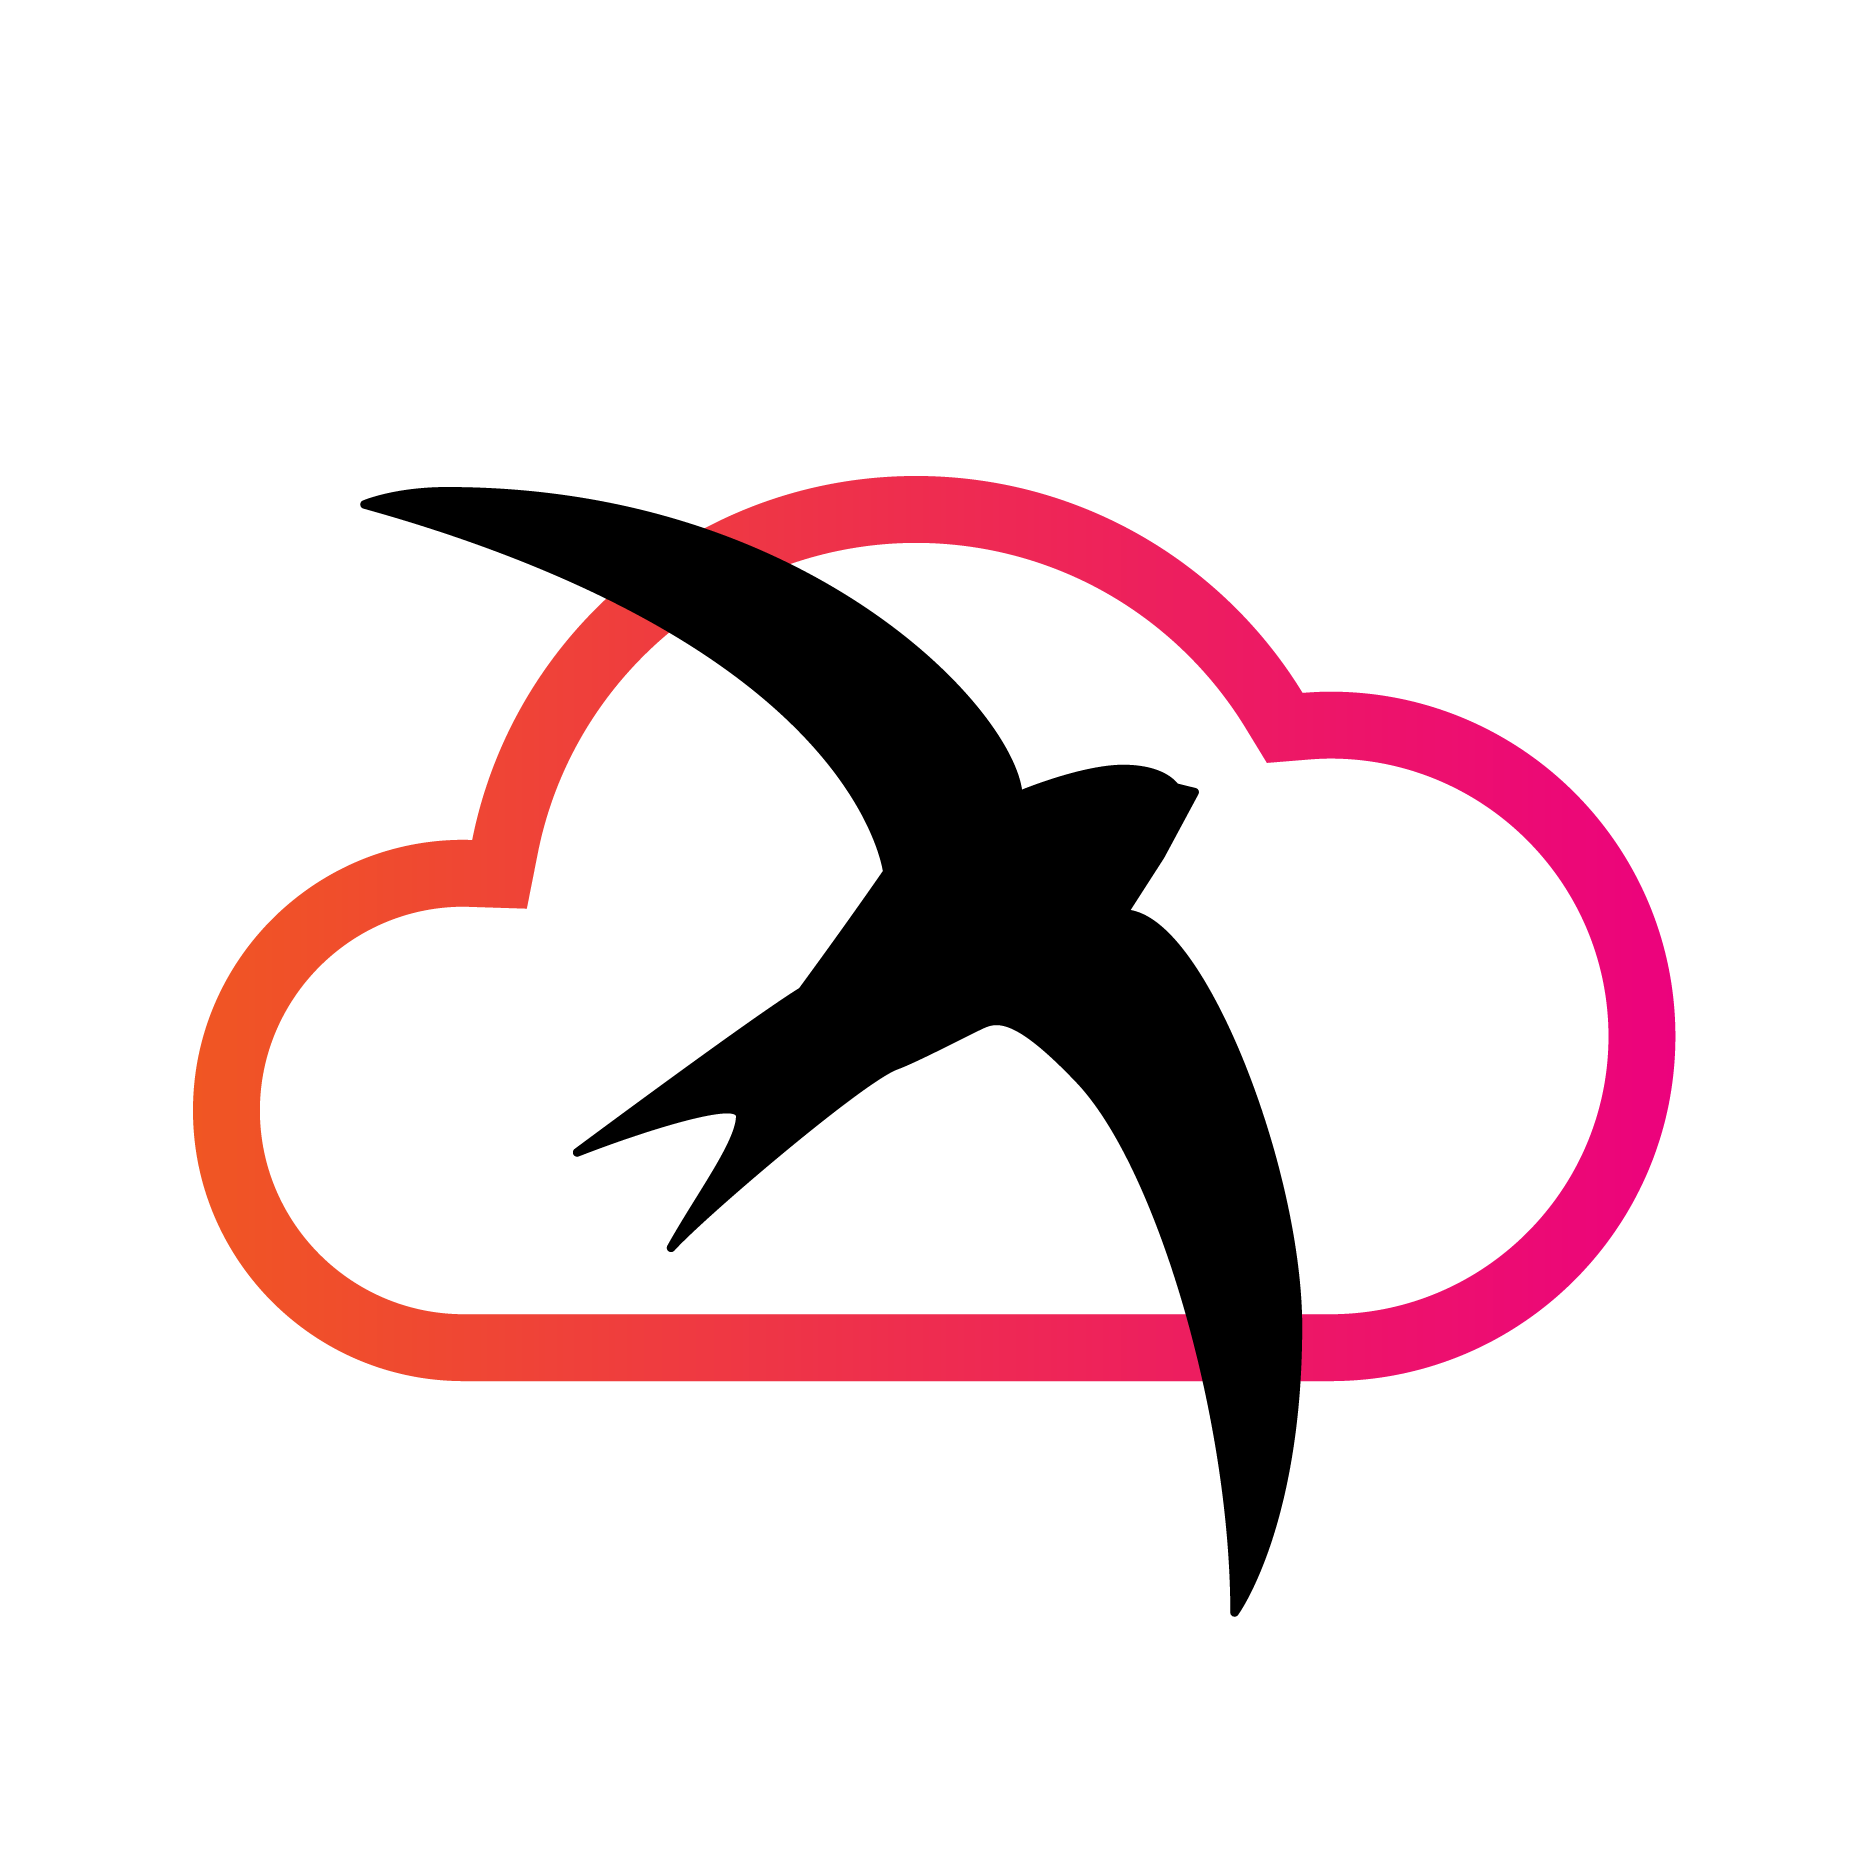 Server-Side Swift Newsletter logo